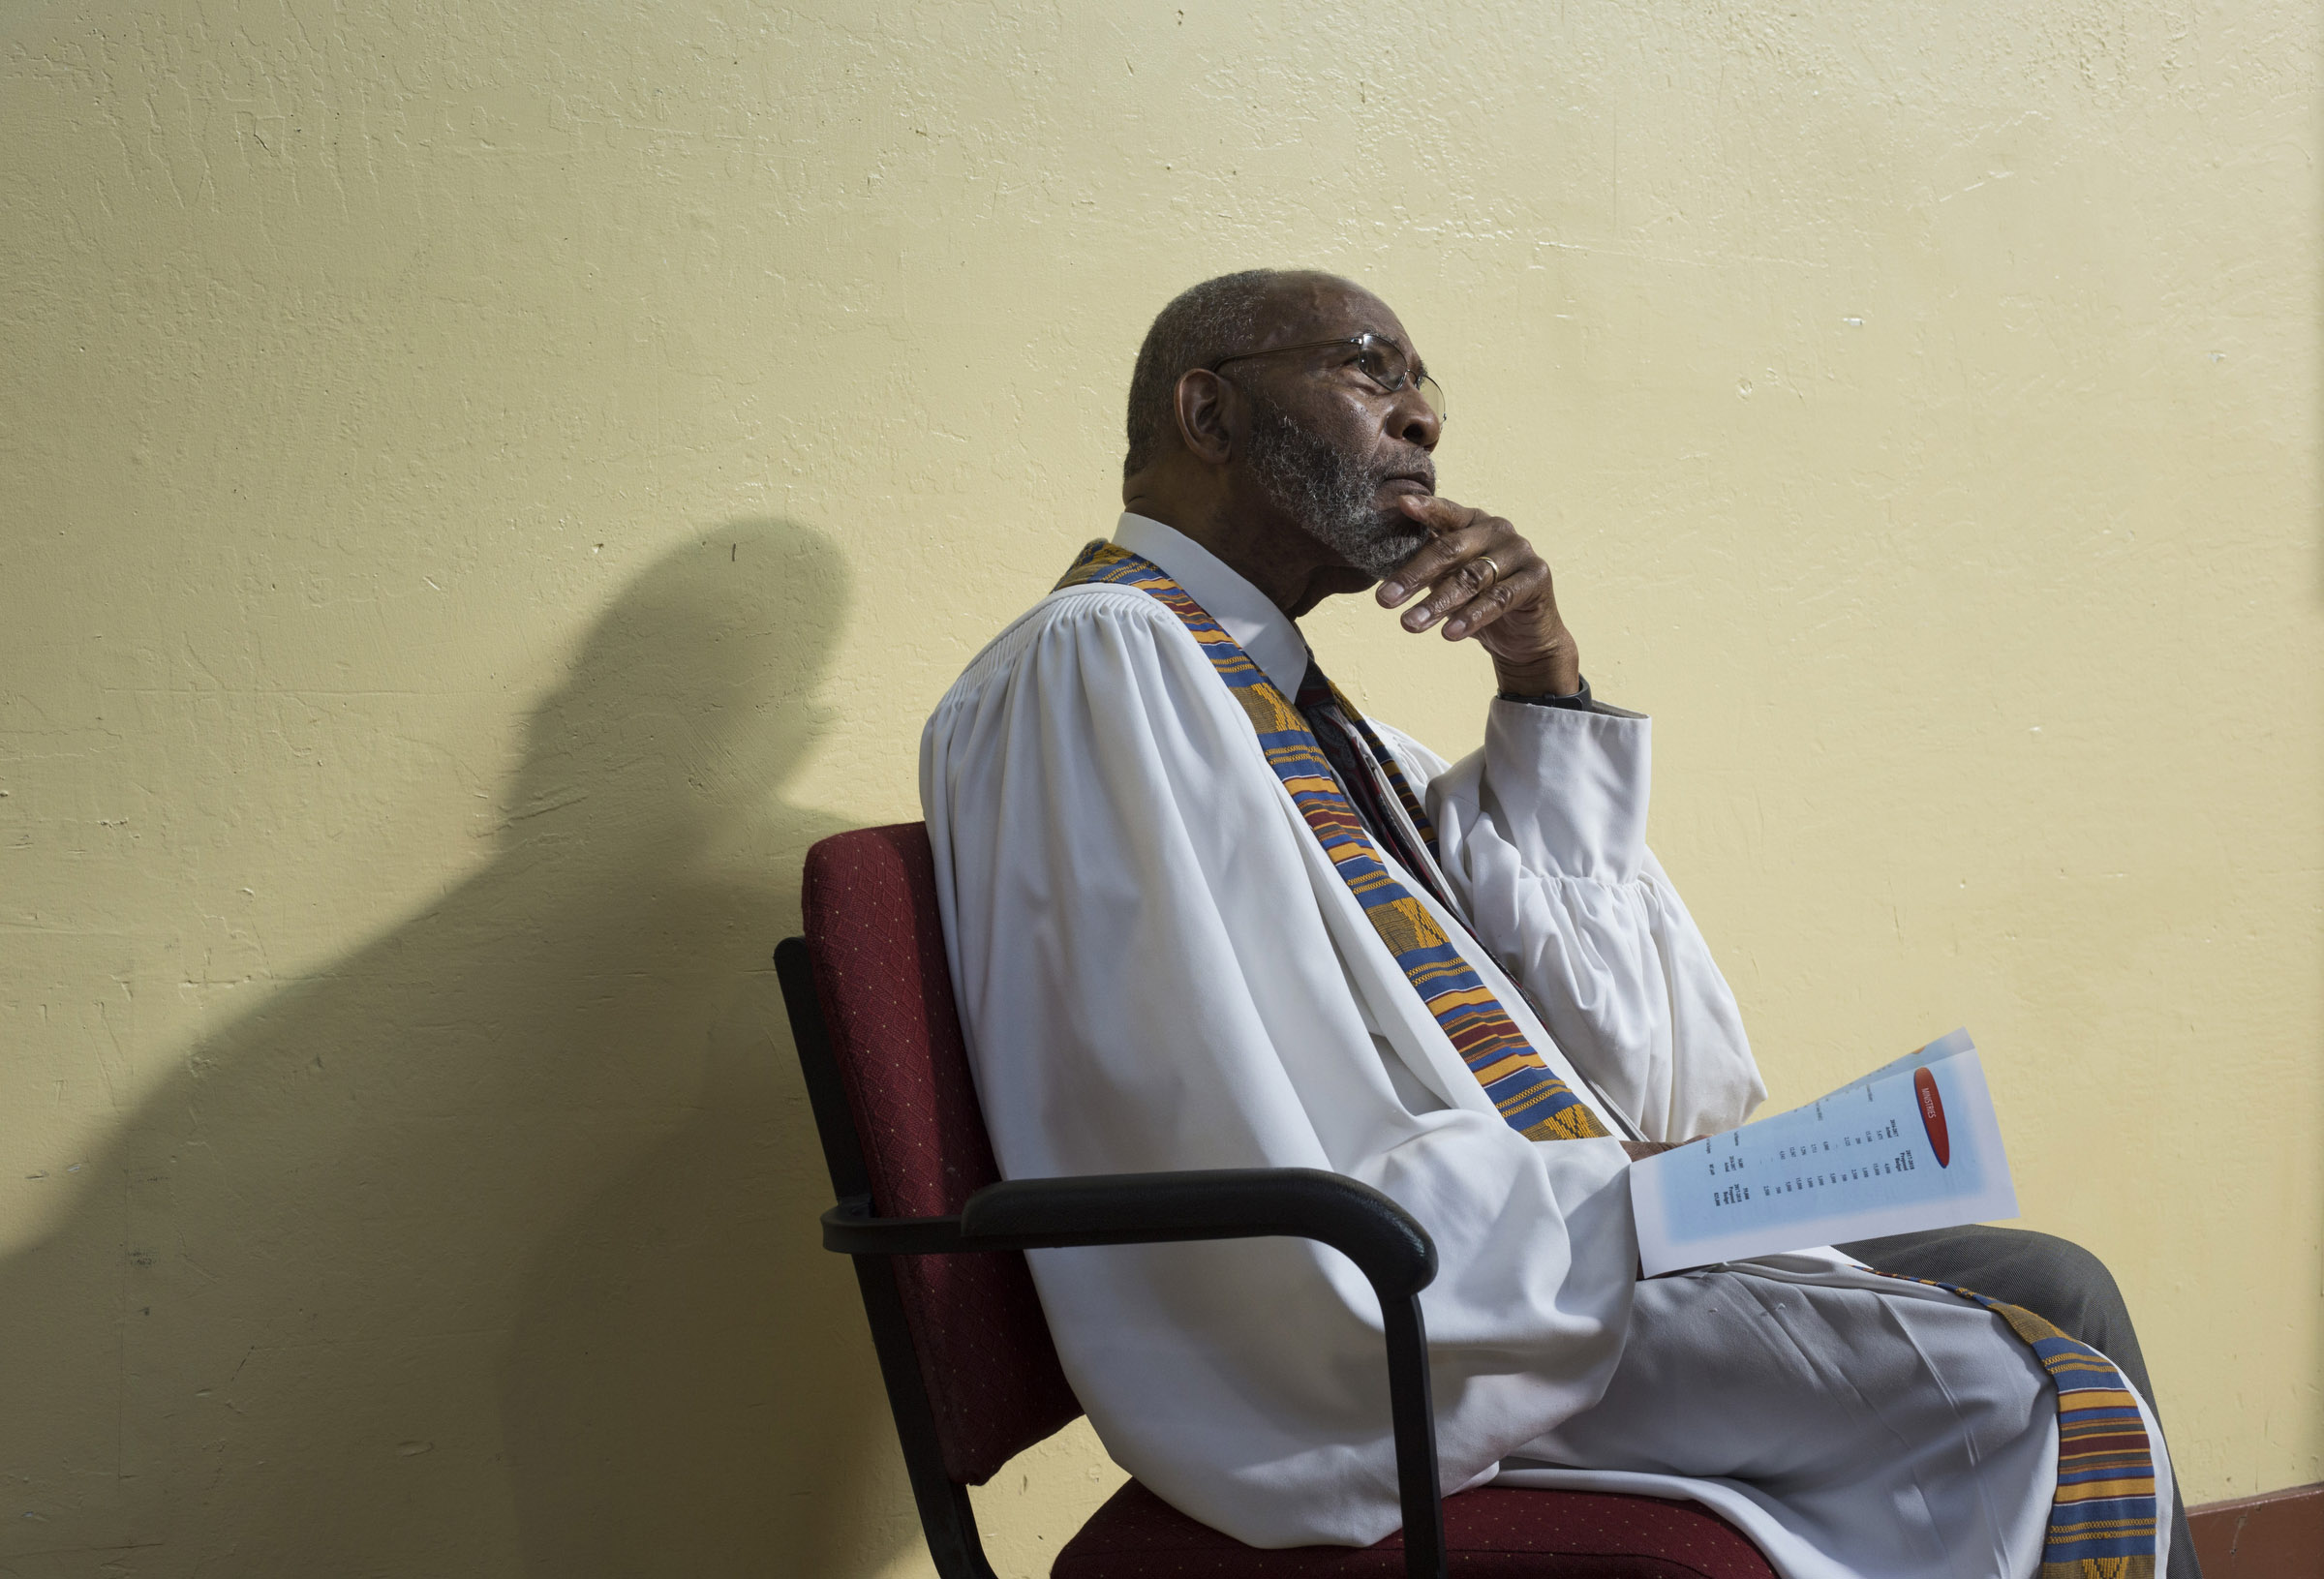 Dr. Amos C. Brown listens to a discussion about the budget with his congregation during a luncheon at the Third Baptist Church, where he is the pastor, in the Fillmore district of San Francisco, California, on Sunday, November 5, 2017. (Photo by Brittany Greeson)